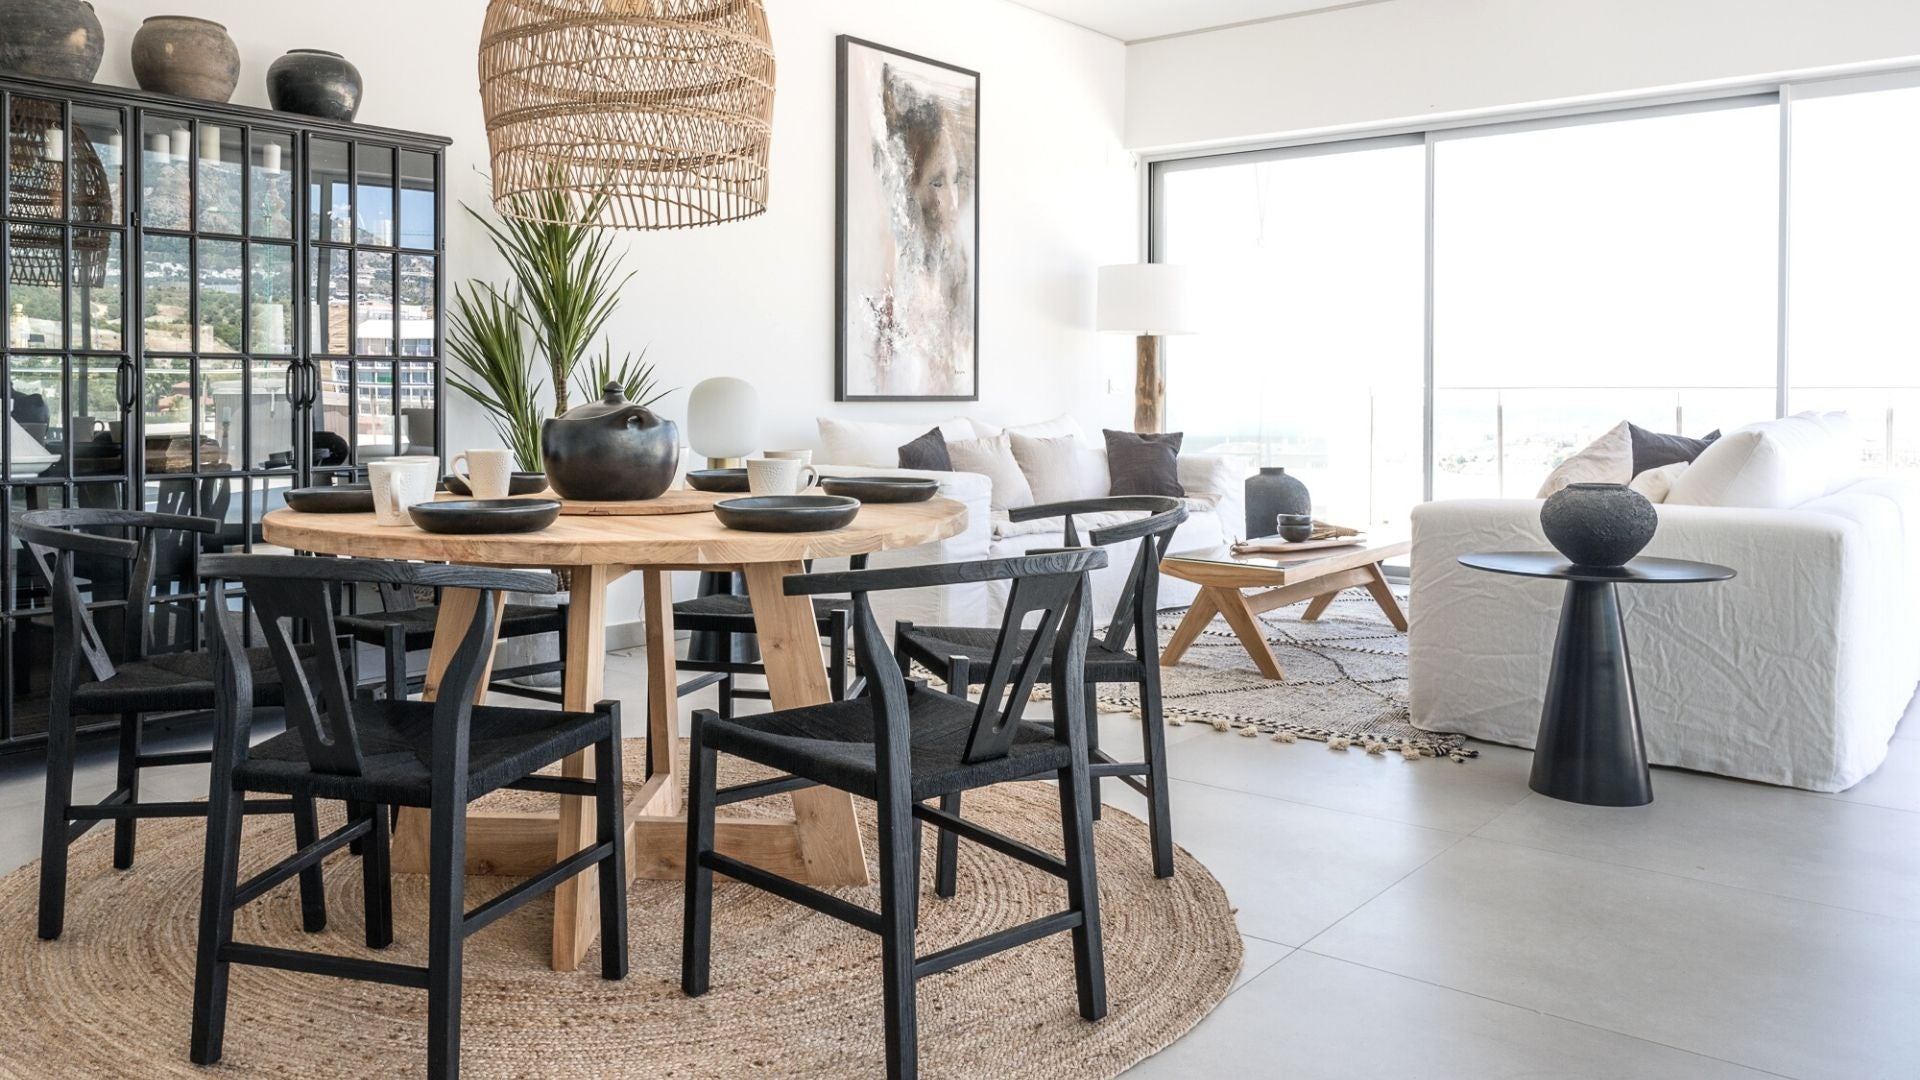 Zoco Home rug, dining table